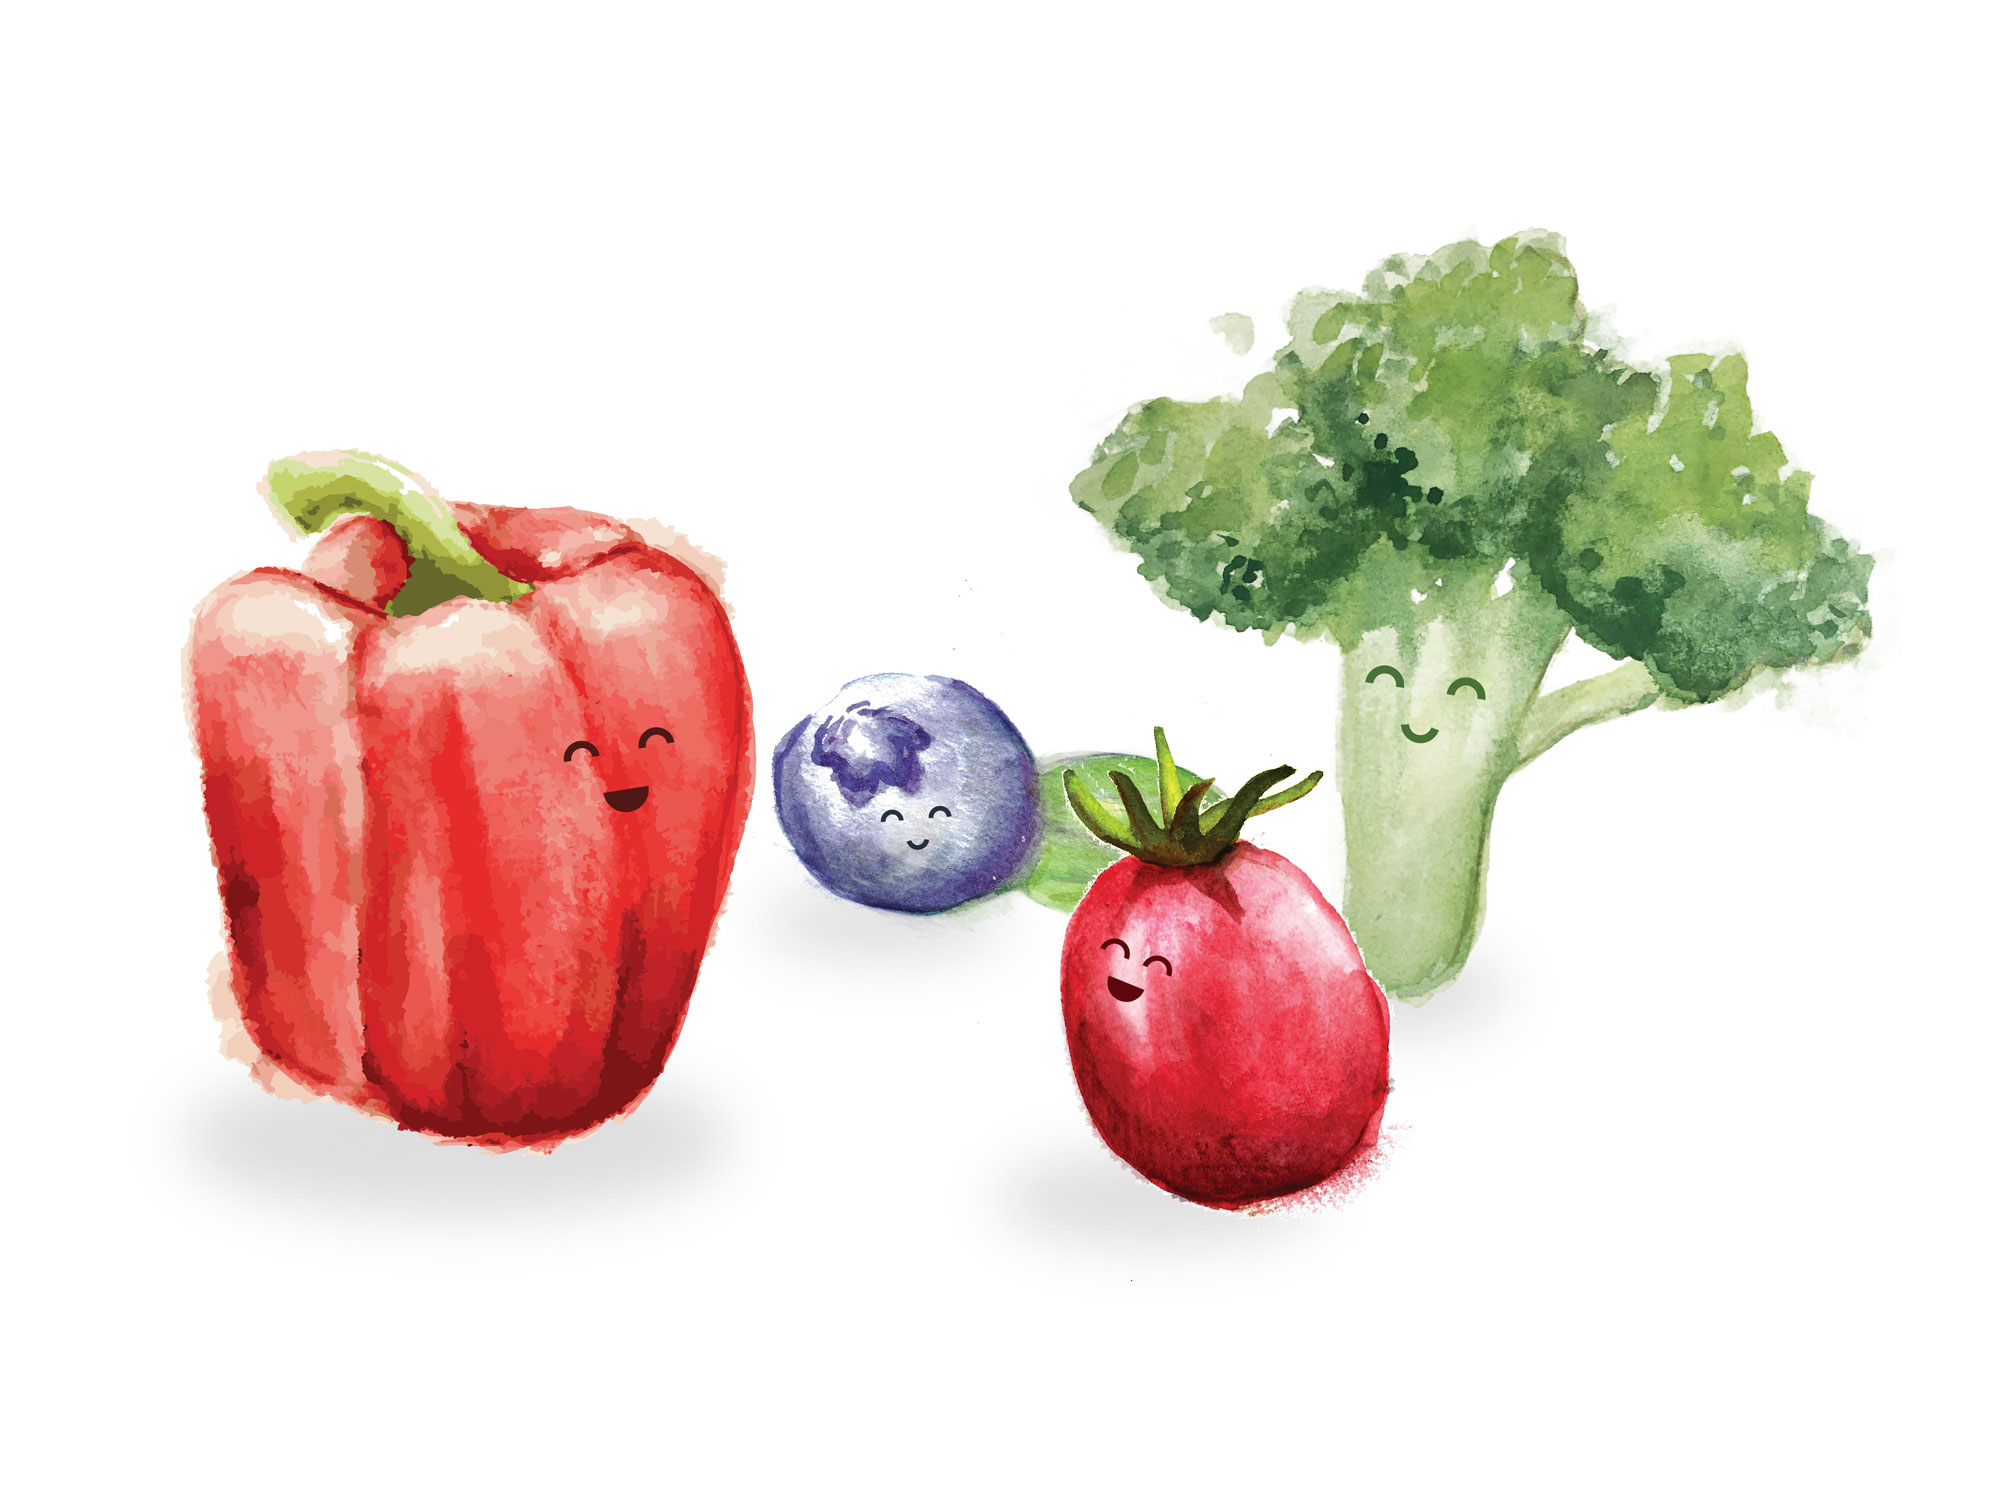 A collection of cute hand painted watercolour red bell pepper, blueberry, broccoli and grape tomato with faces.